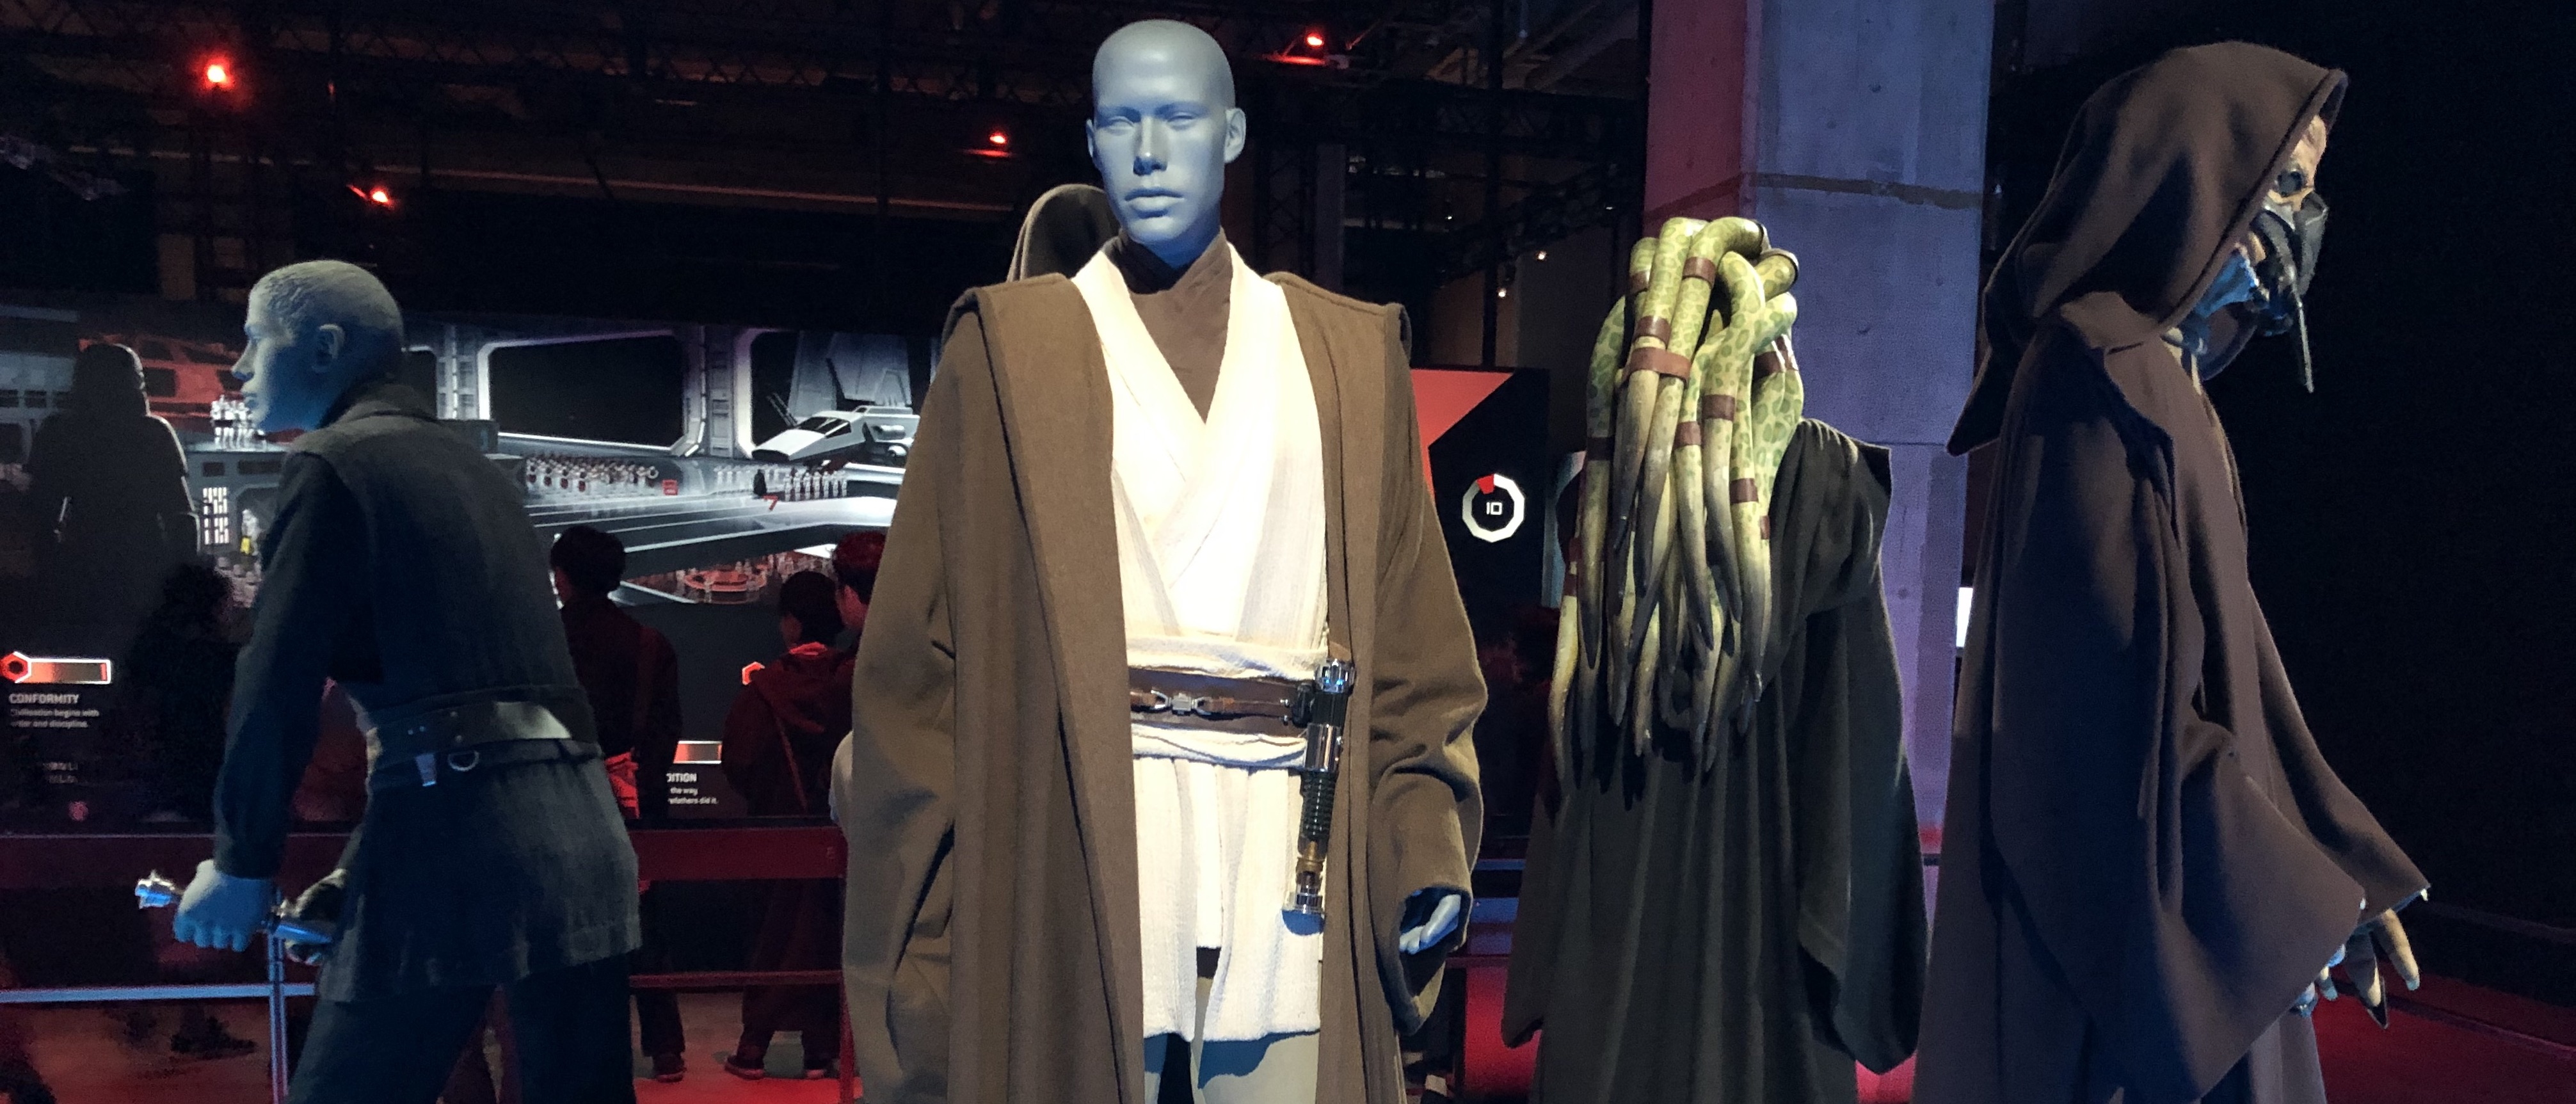 'Star Wars' Identities: 10 Things We Learned from Lucasfilm's Treasure Trove of Original Movie Costumes